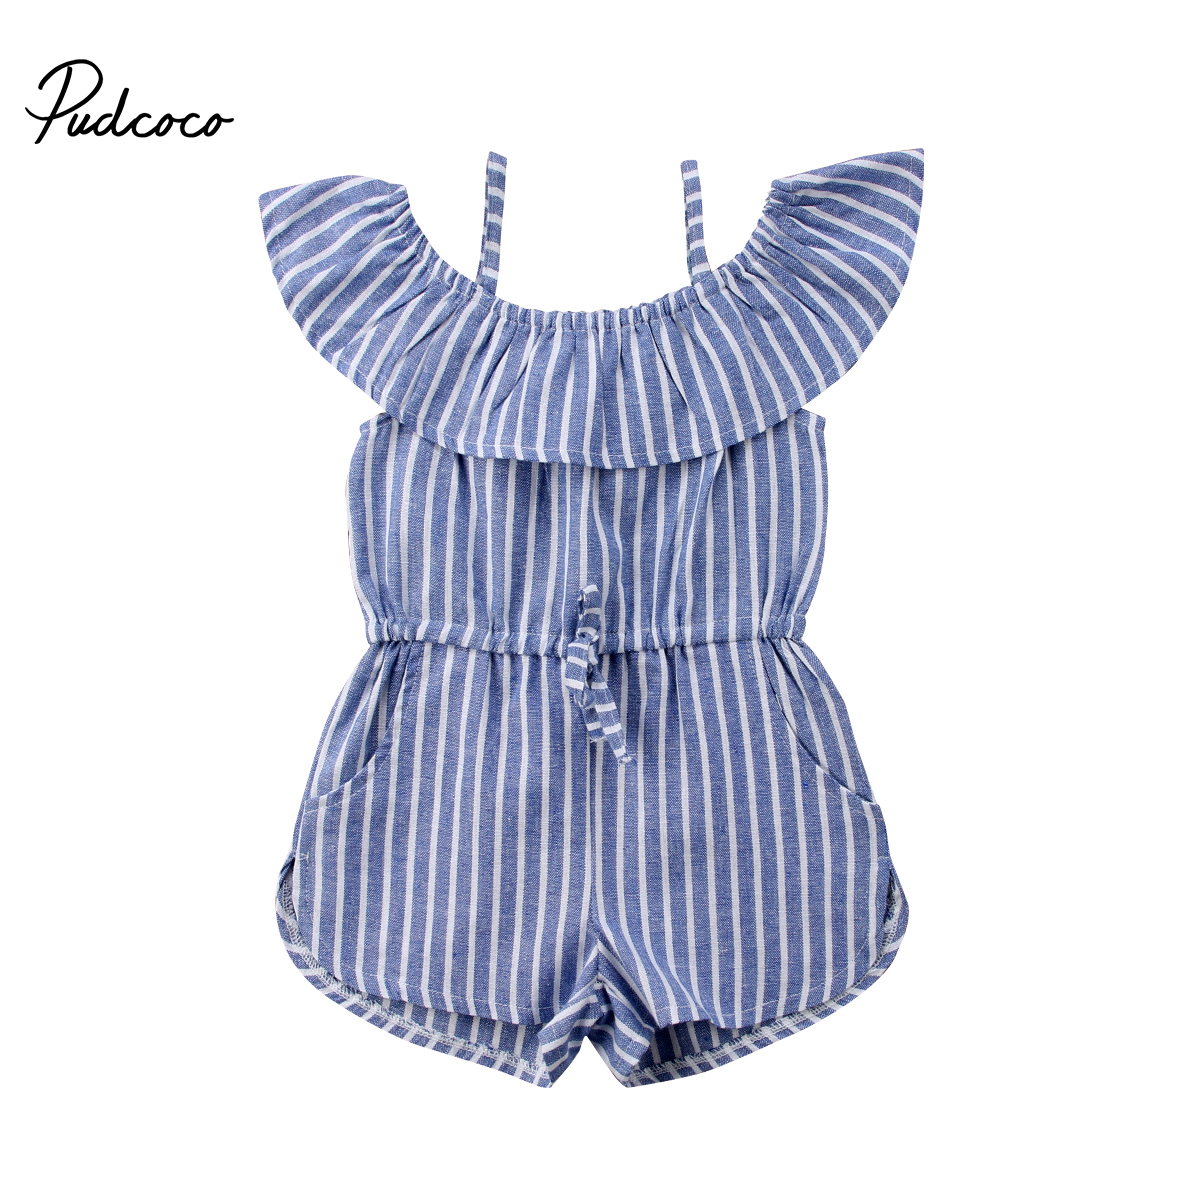 2018 Brand New Toddler Infant Child Kid Baby Girl Stripe Off Shoulder   Romper   Jumpsuit Pocket Clothes Ruffled Sunsuit Outfit 1-6Y